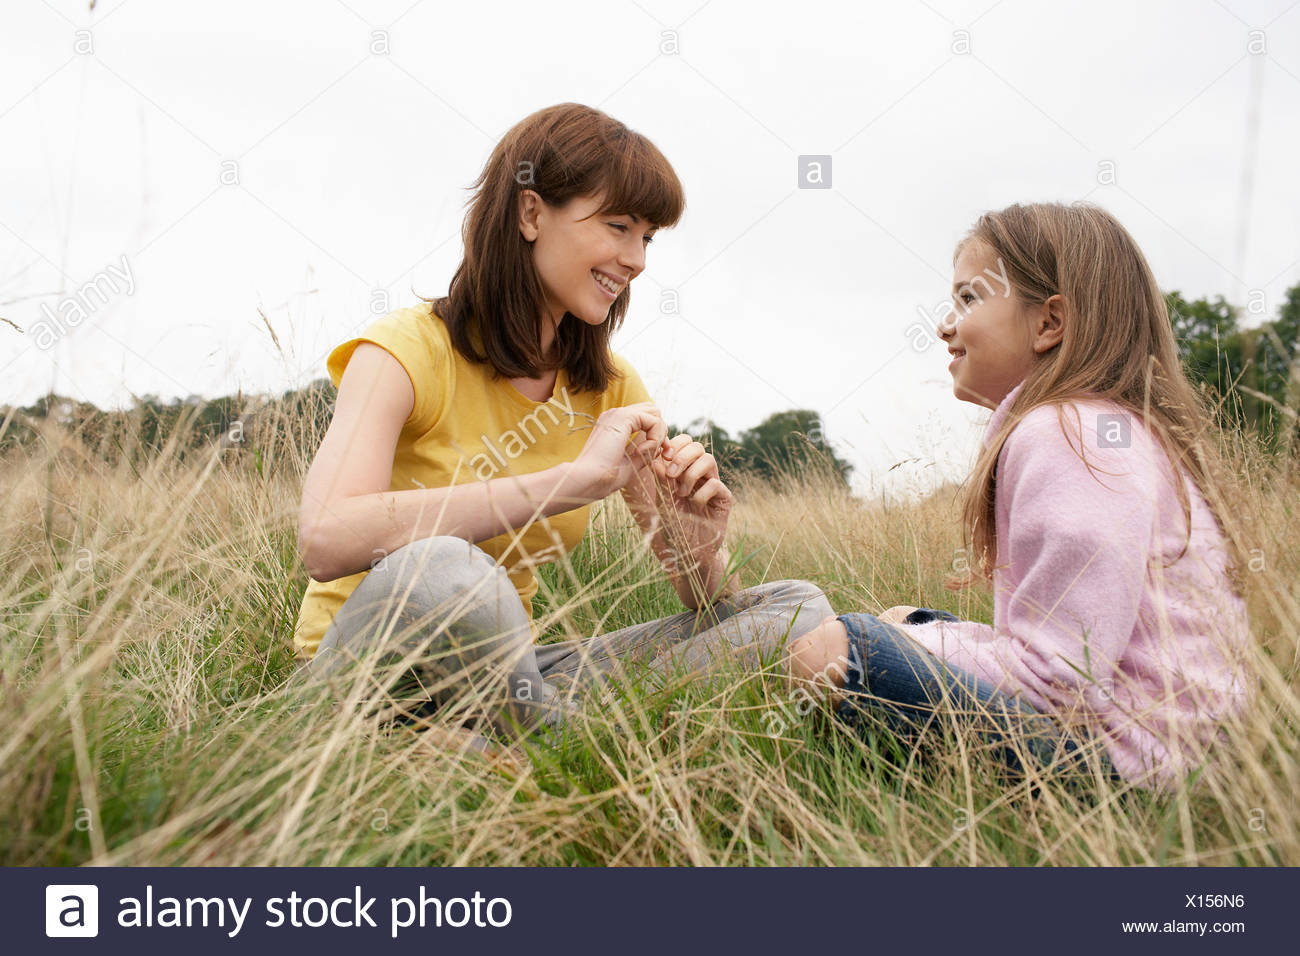 Mother and daughter sitting in a field - Stock Image